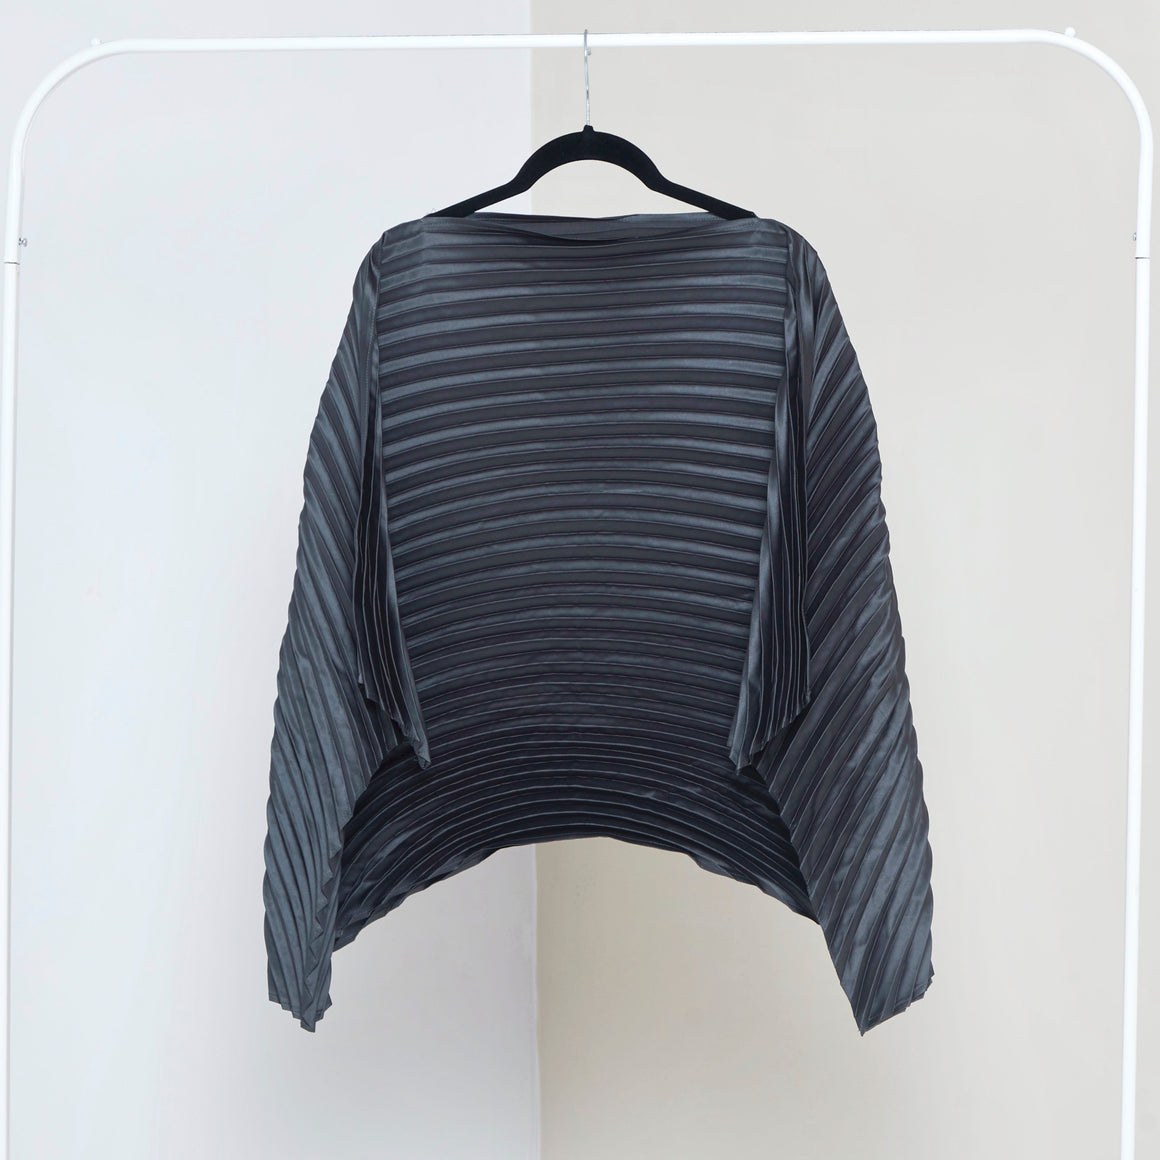 Satin Poncho Top - Steel Grey